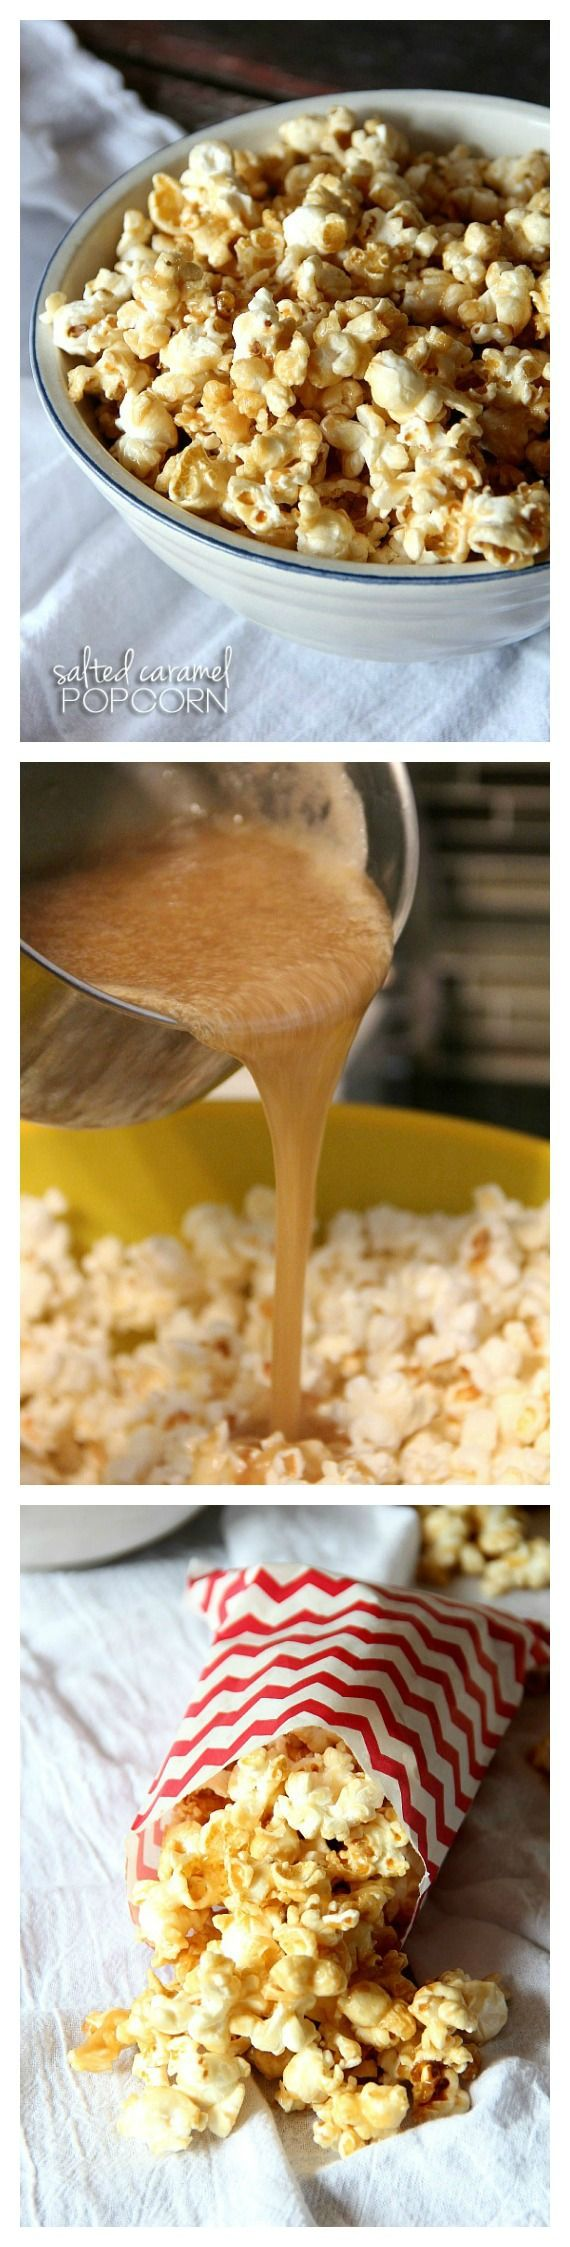 Salted Caramel Popcorn..the only caramel popcorn recipe you'll ever need!!! #glutenfree